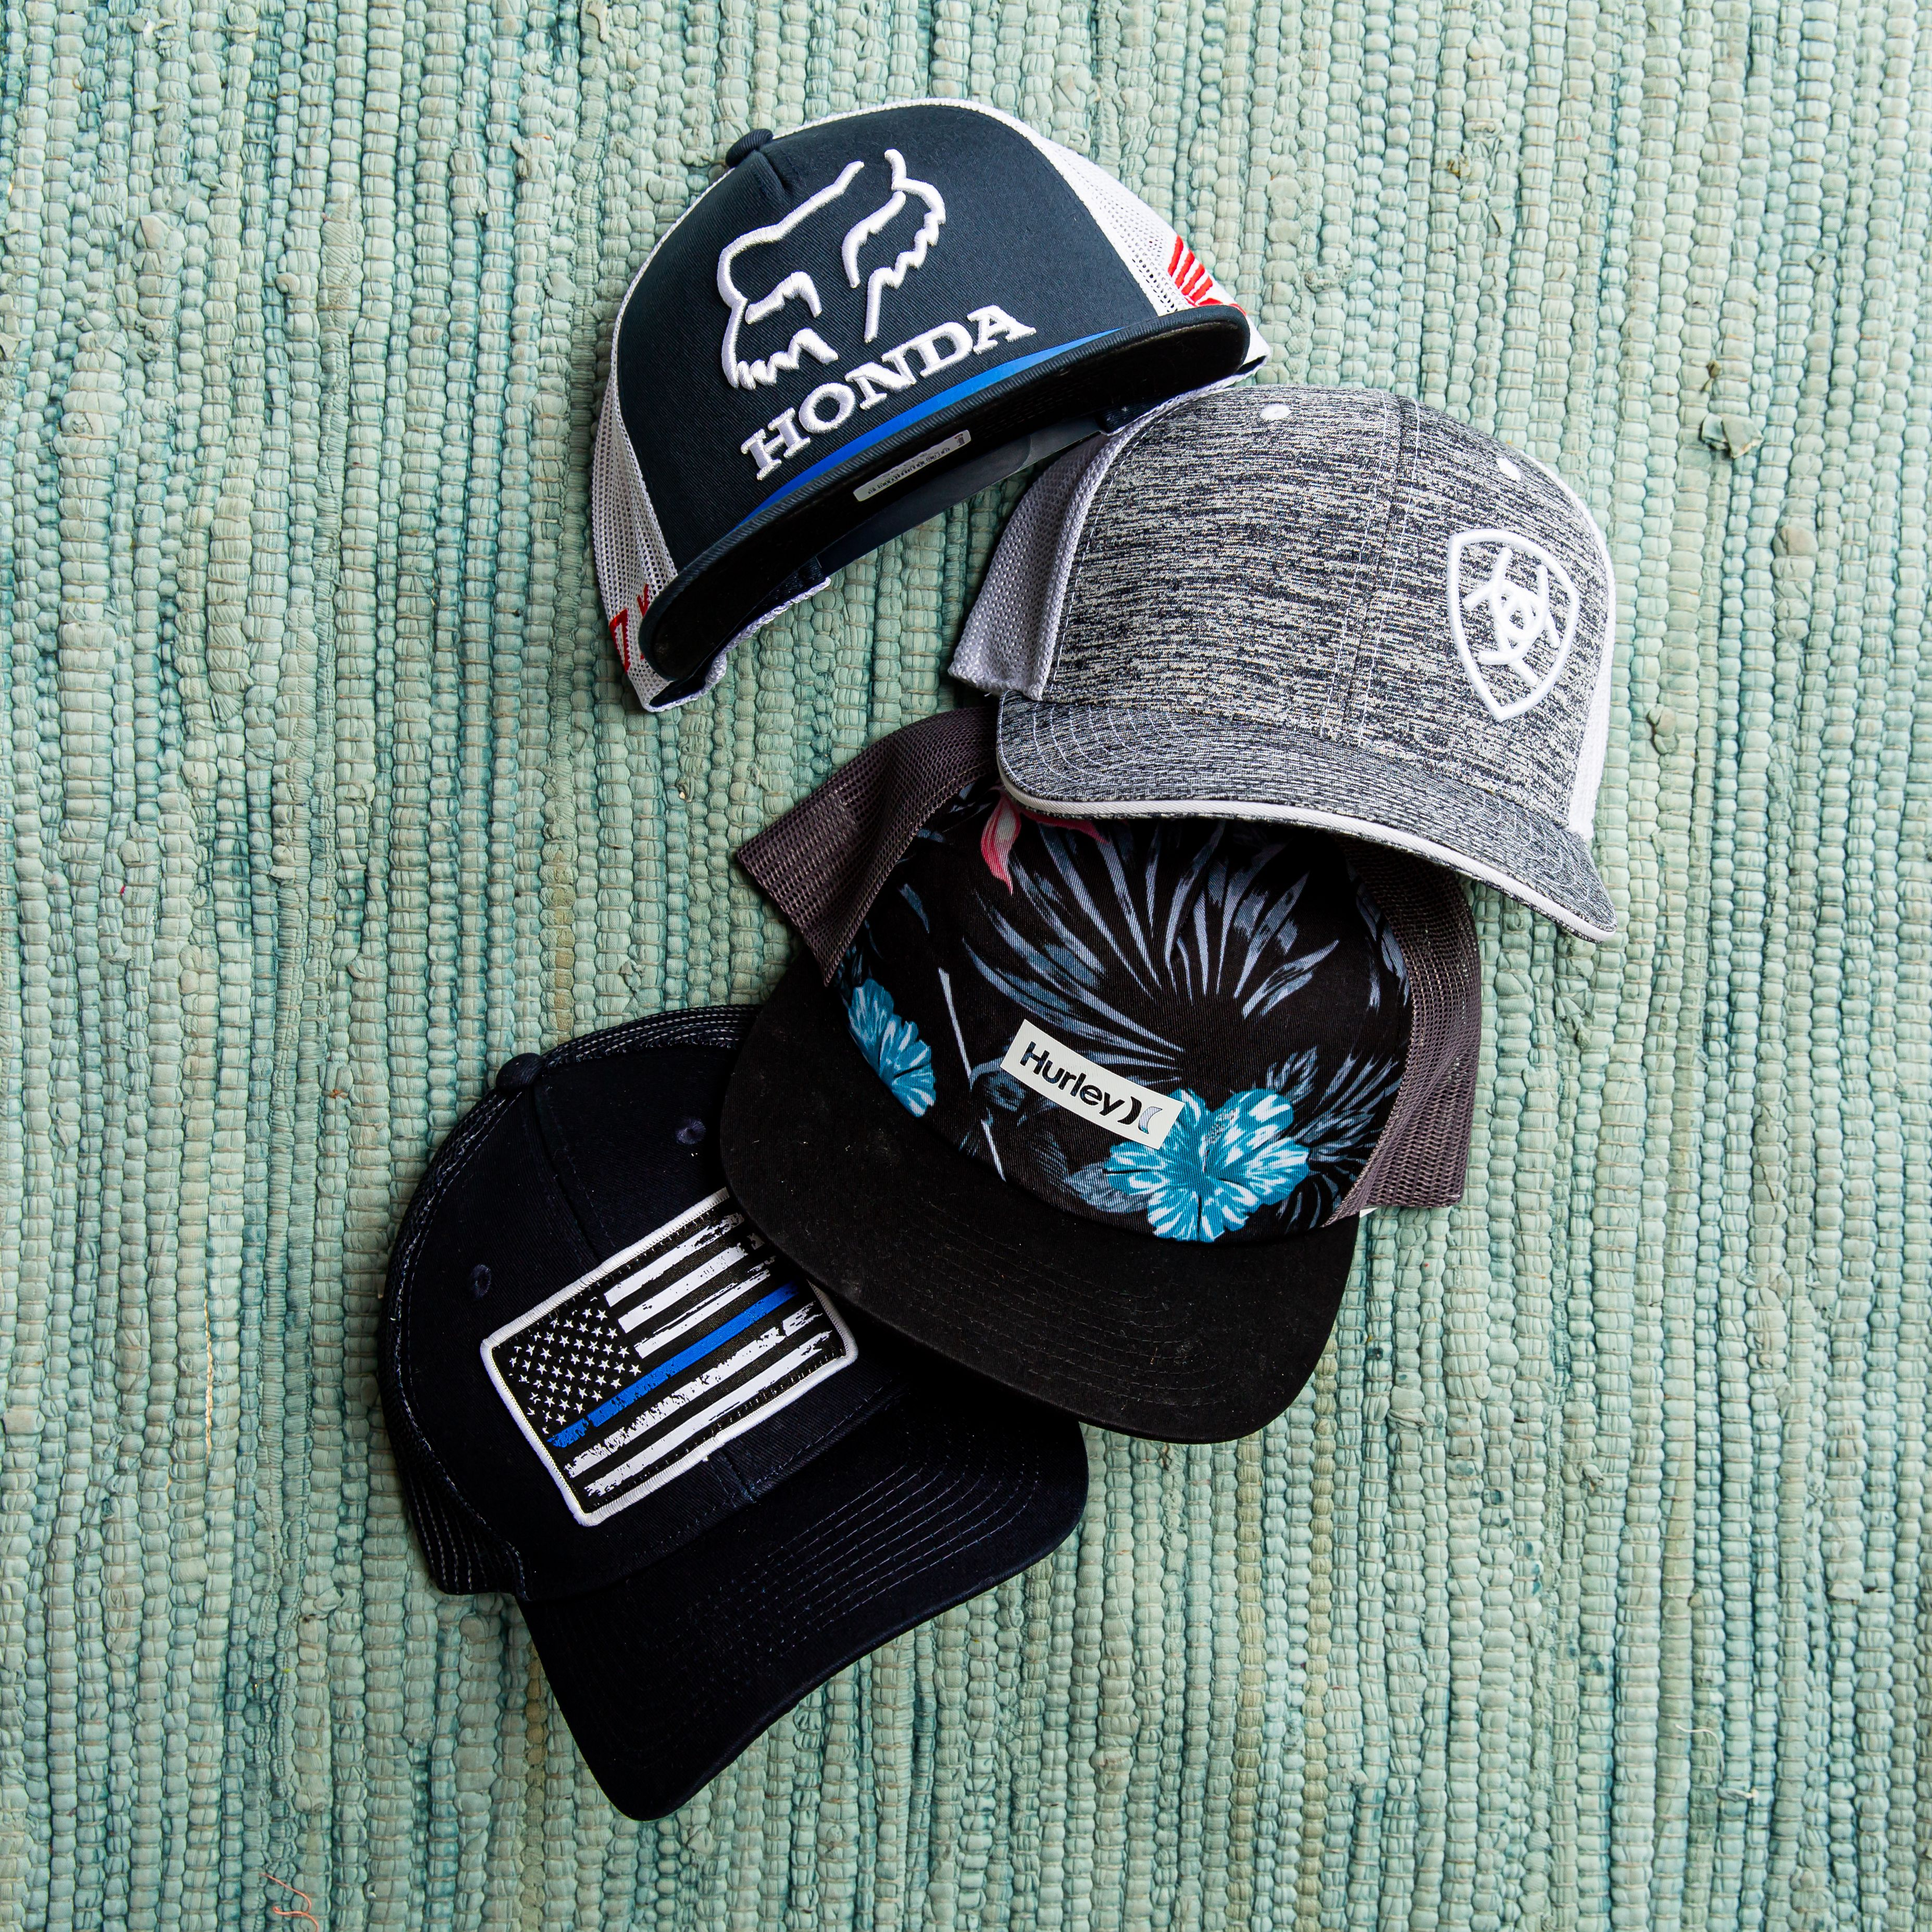 Men S Snap Backs And Baseball Hats For Casual Looks Or Easy Gifts Buckle Hats For Men Hats Cute Hats